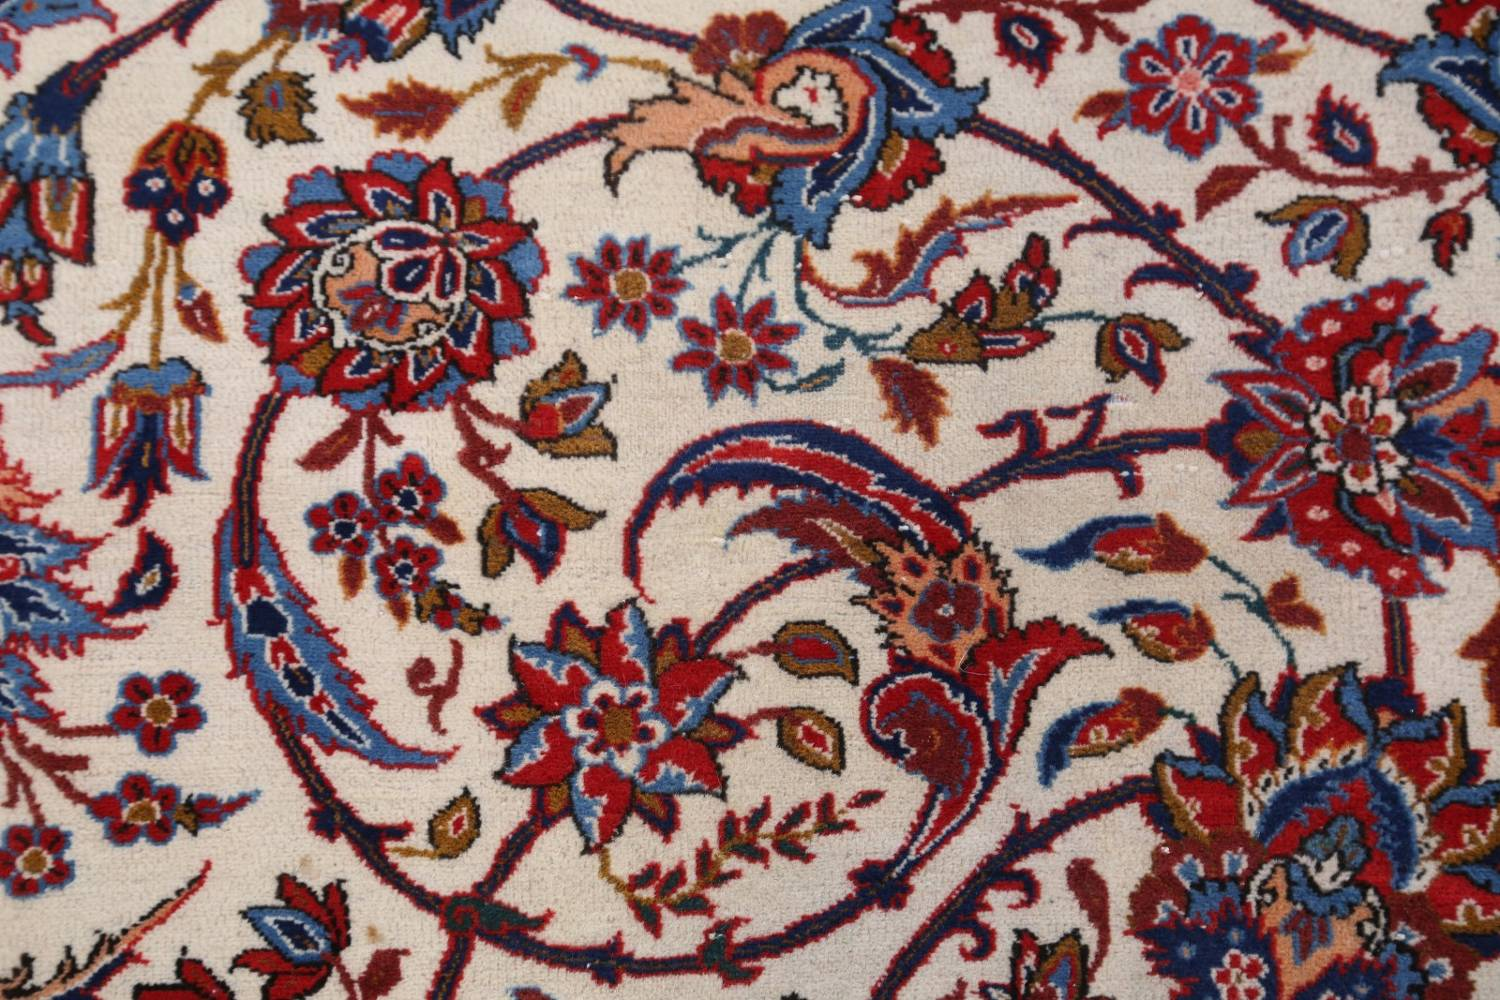 Antique Floral 10x16 Isfahan Persian Area Rug image 13